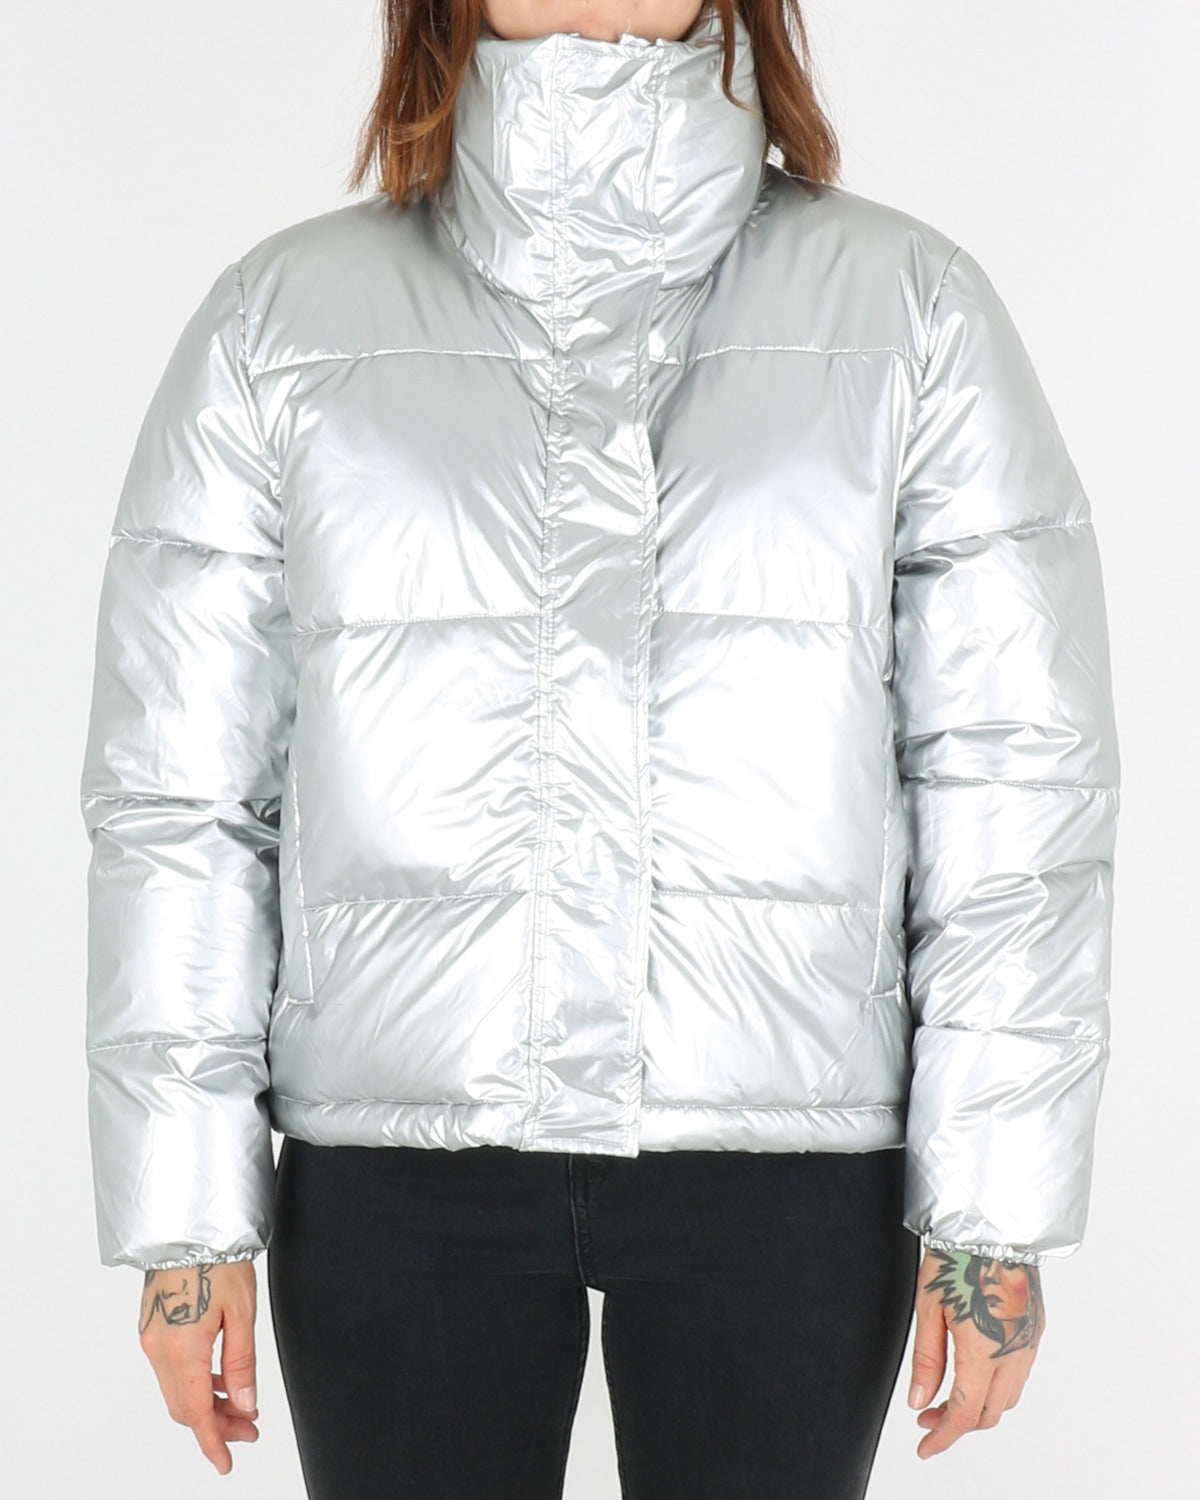 selfhood_puffer jacket 77126_silver_1_4